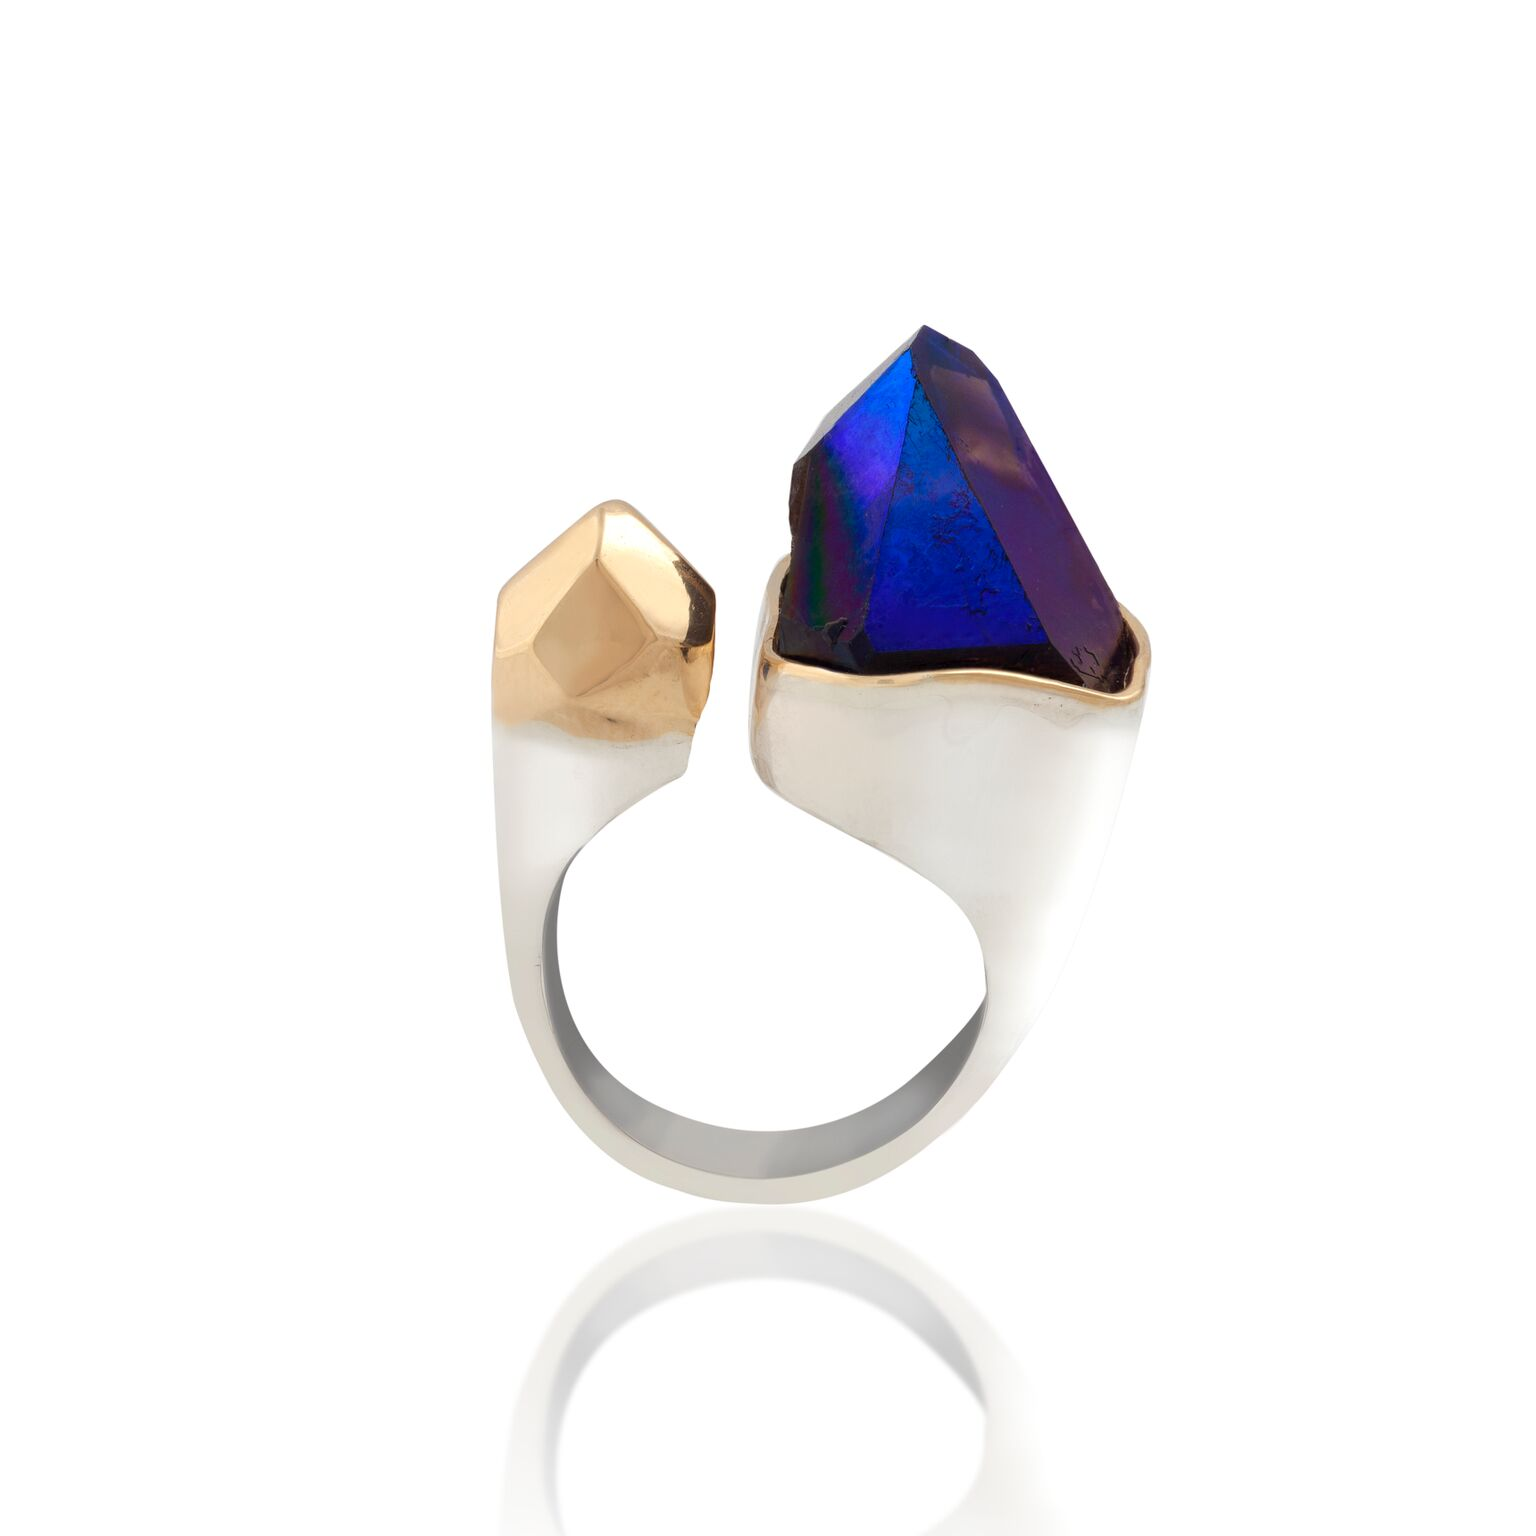 A sliced tip of a crystal, infused with titanium, with an 18k gold bezeland a 18k solid gold nugget, set in white gold-plated silver ring